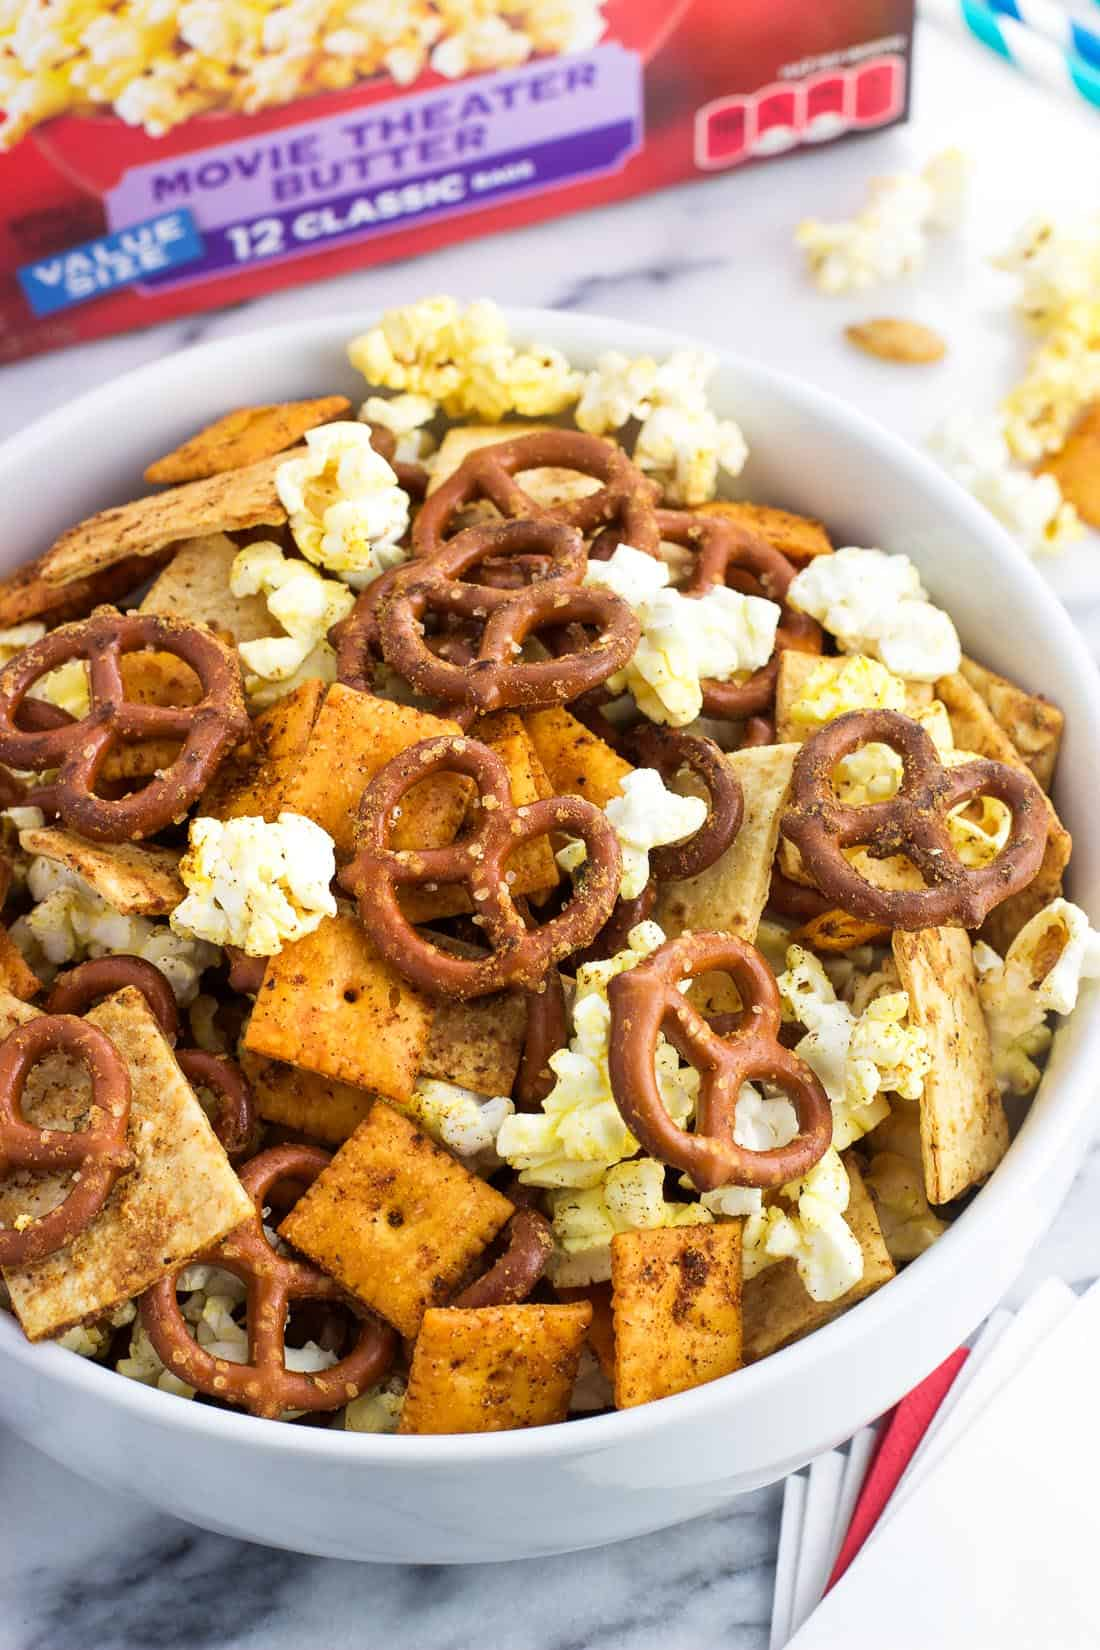 A bowl of popcorn snack mix next to a stack of napkins and paper straws for serving at a party